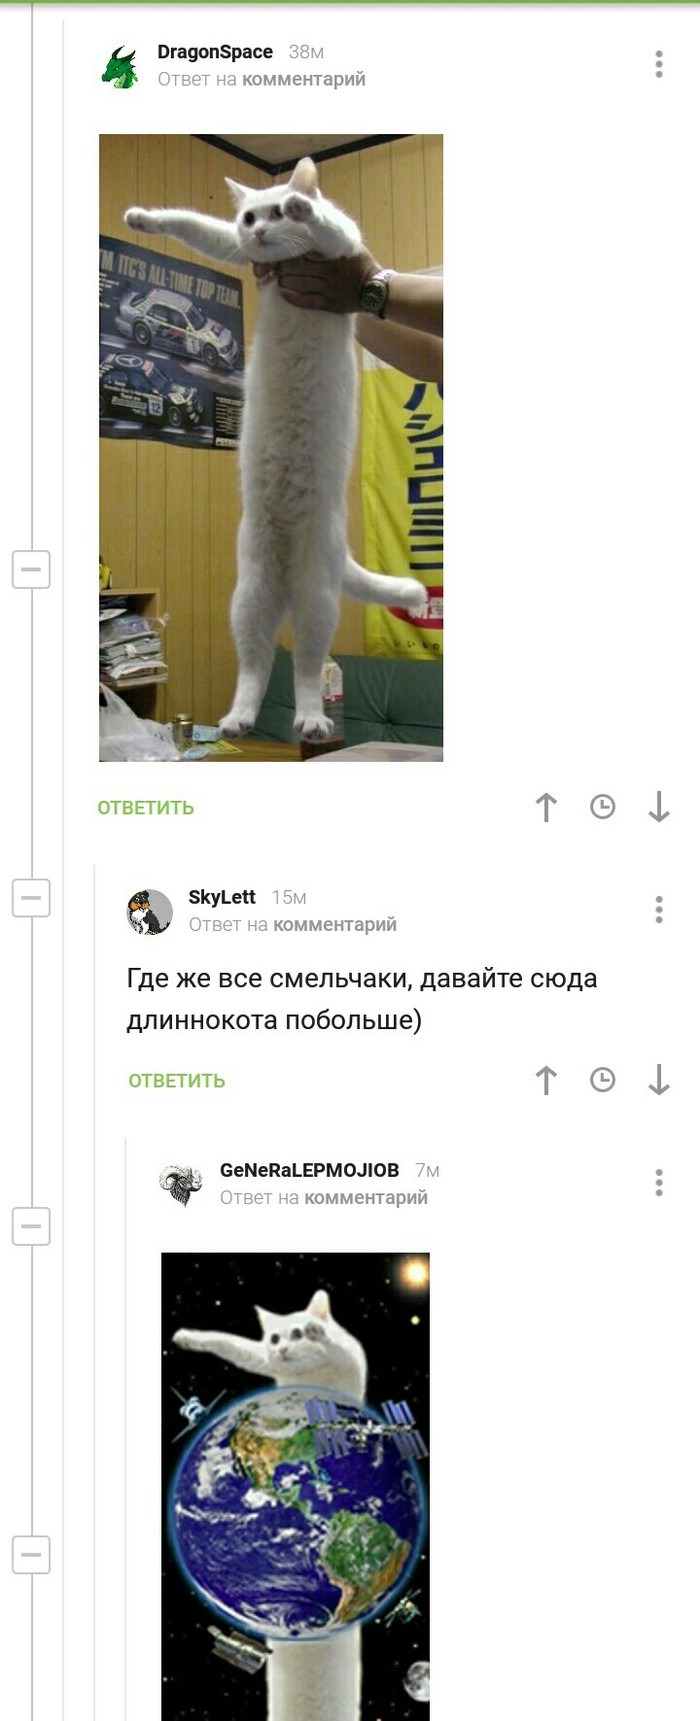 https://cs11.pikabu.ru/post_img/2019/03/01/9/1551448800158452678.jpg